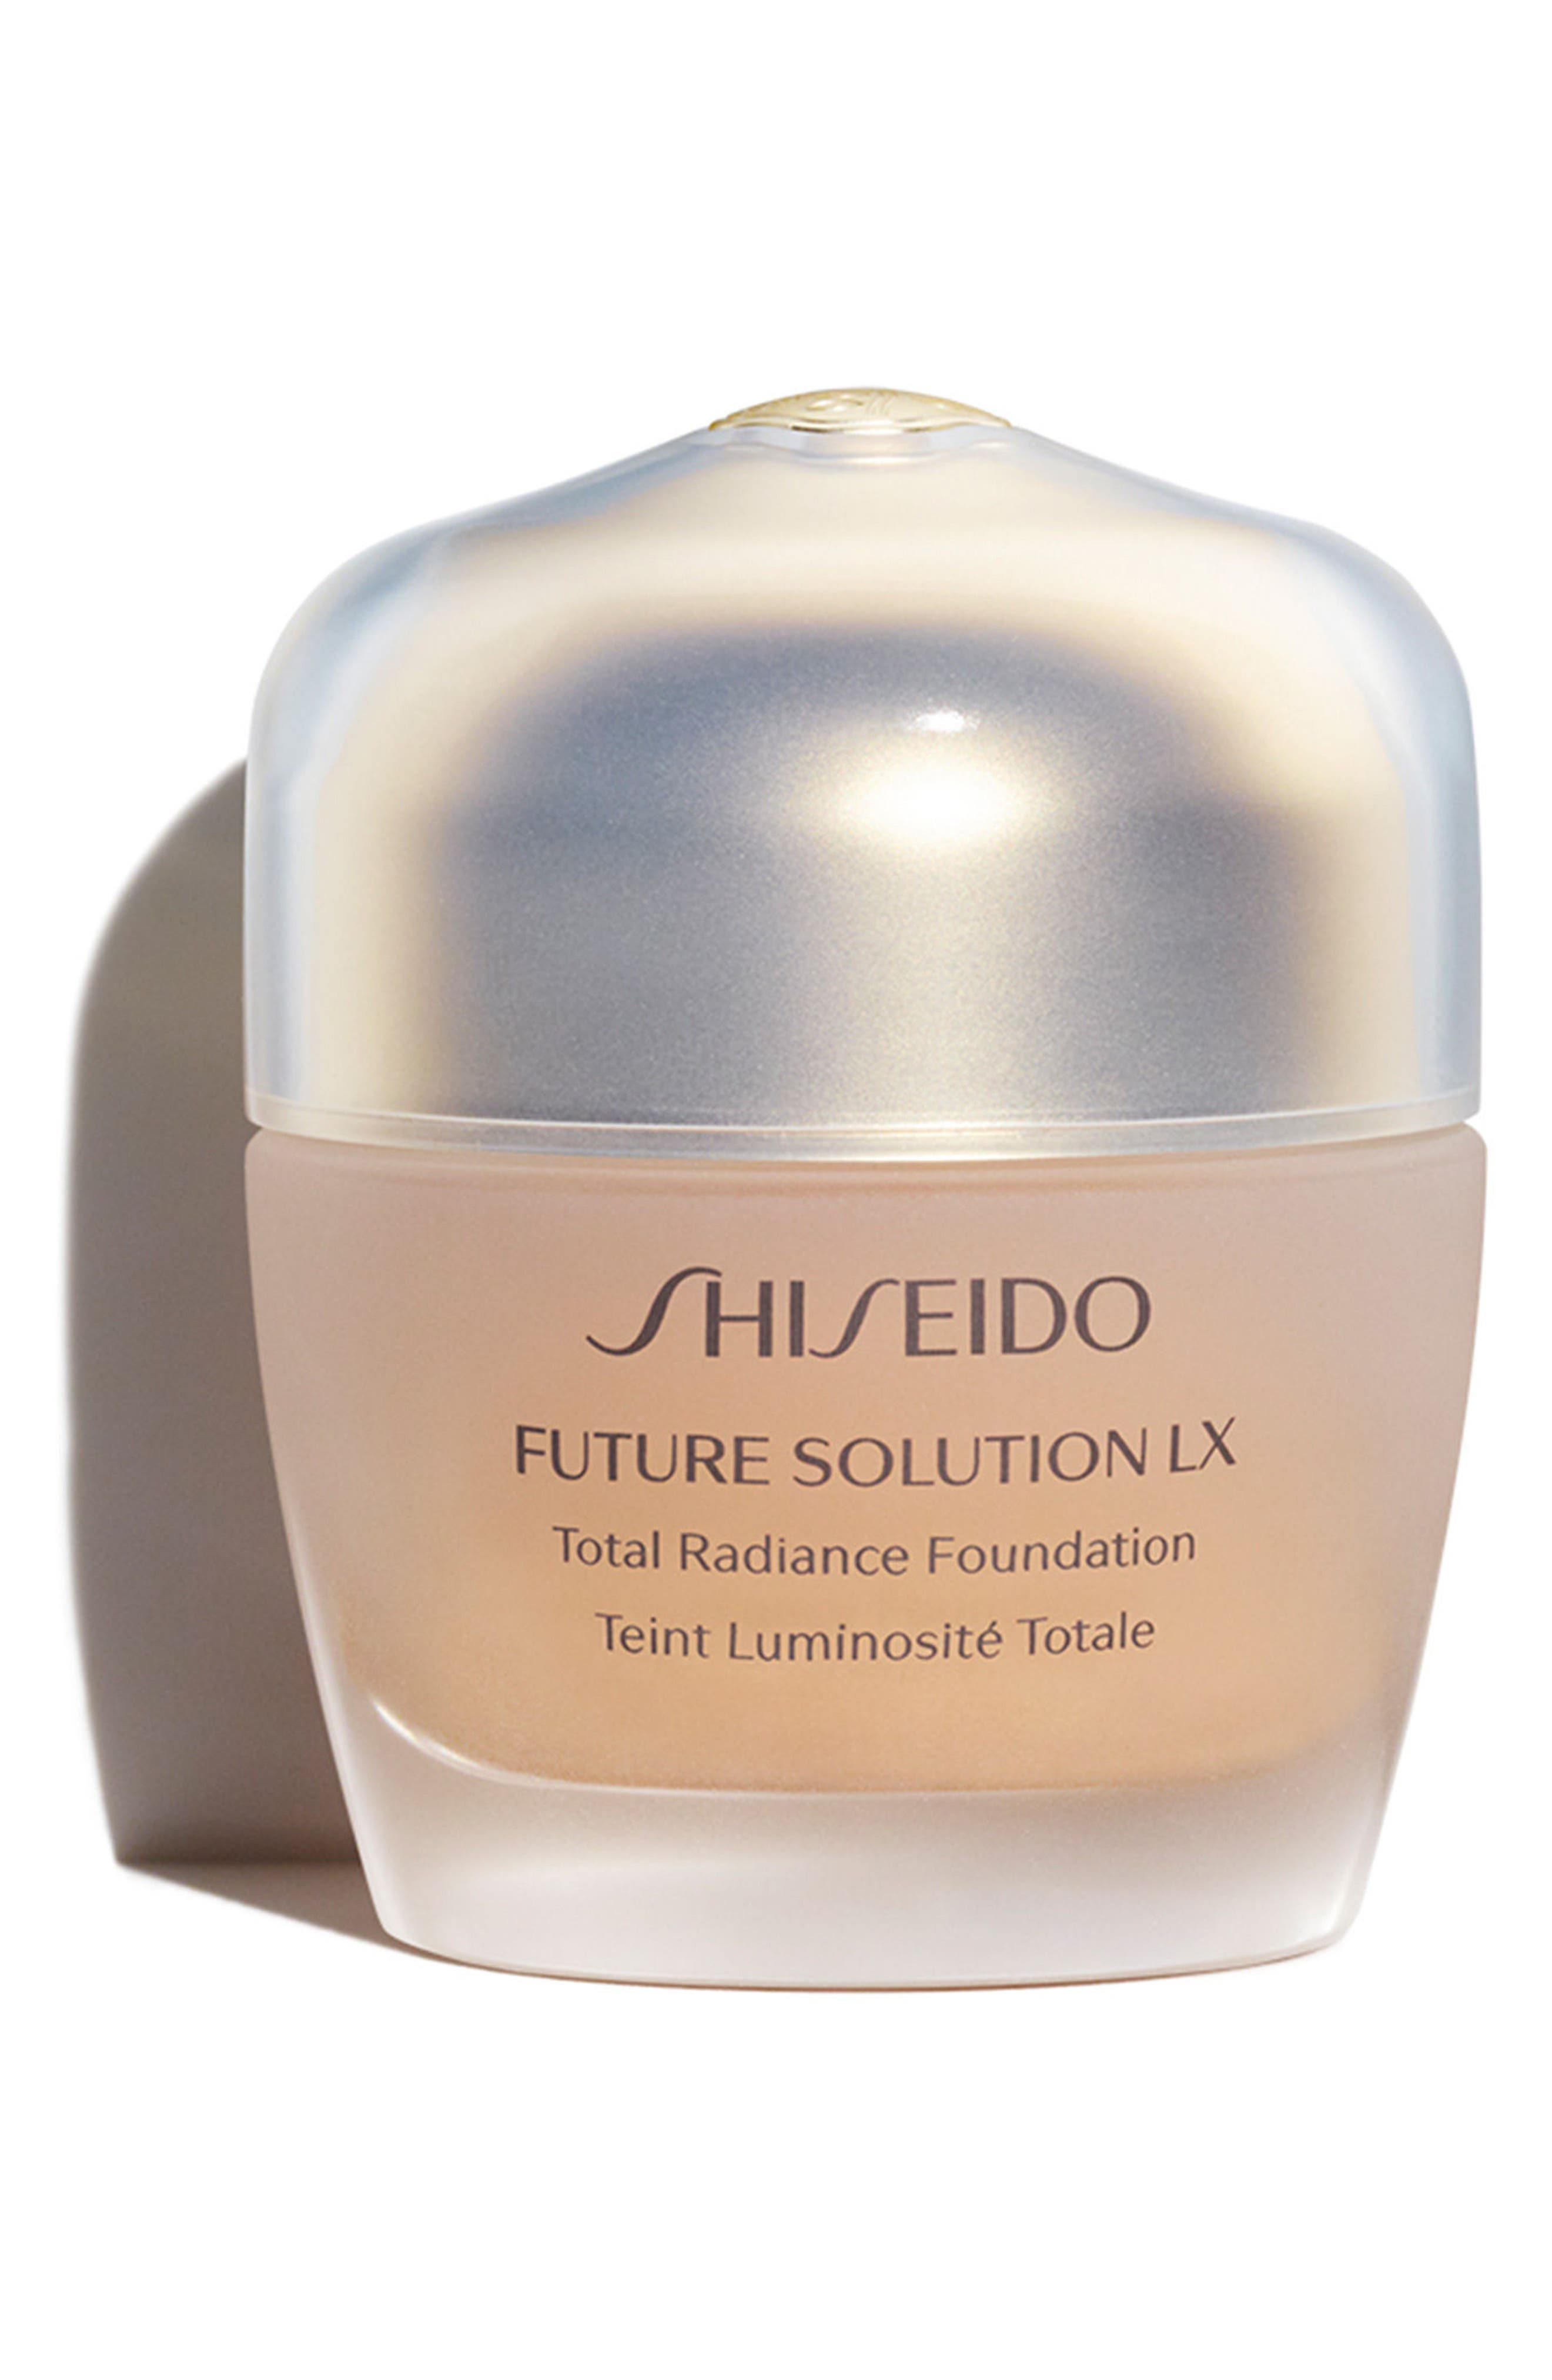 Future Solution LX Total Radiance Foundation Broad Spectrum SPF 20 Sunscreen,                         Main,                         color, GOLDEN 1